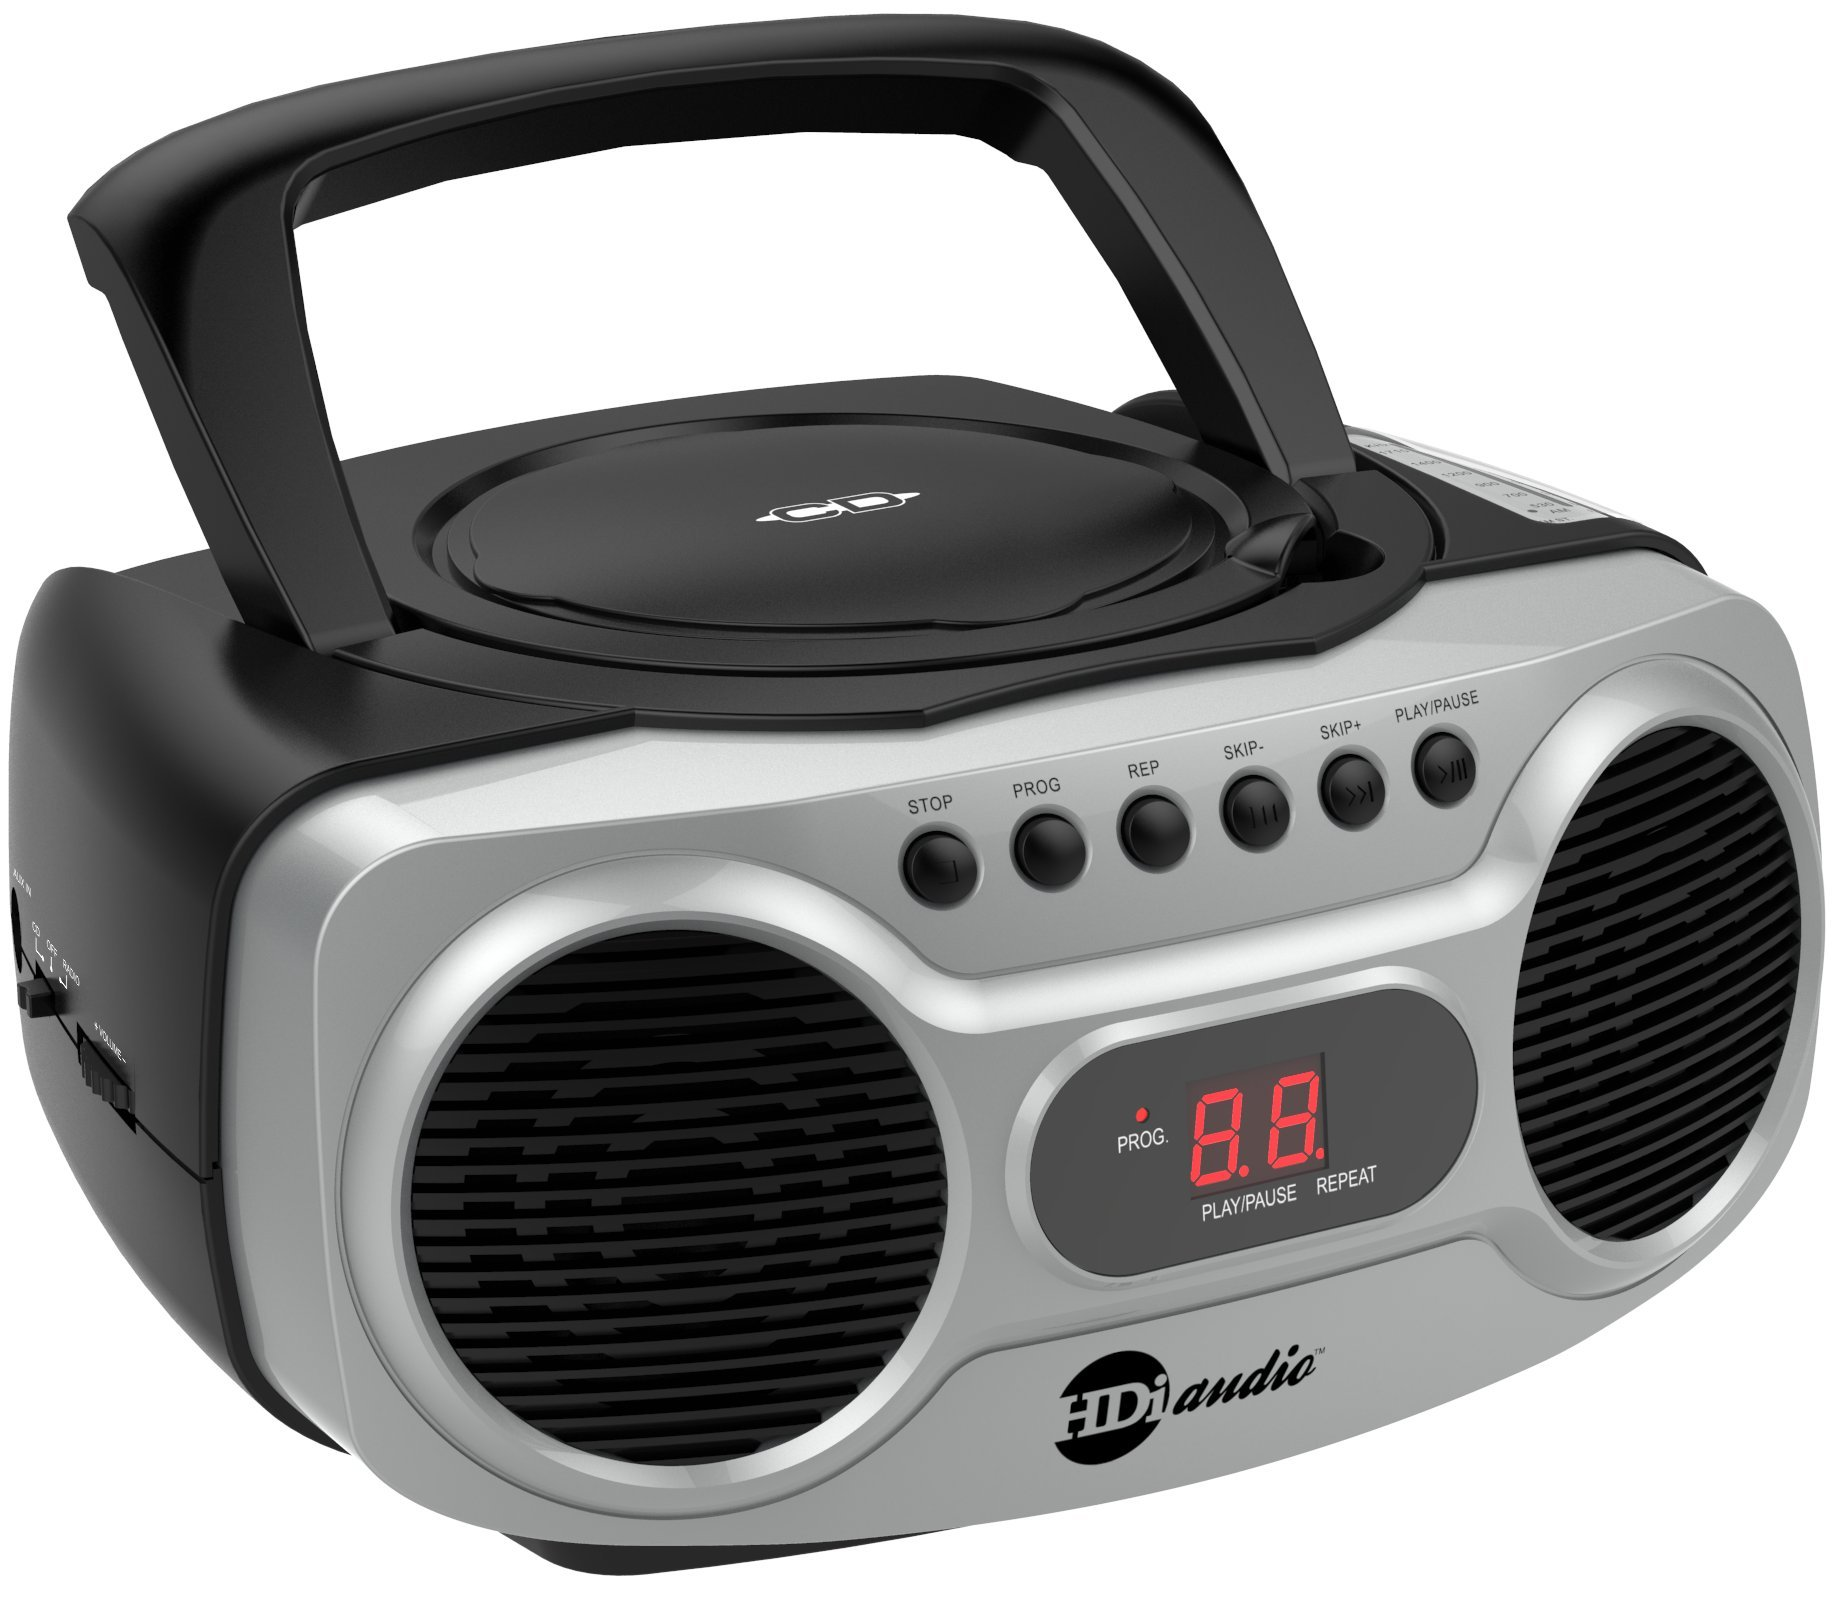 HDi Audio Boombox CD-518 Sport Stereo Portable CD Player with AM/FM Radio and Aux Line-in Boombox Black/Silver by HDi Audio